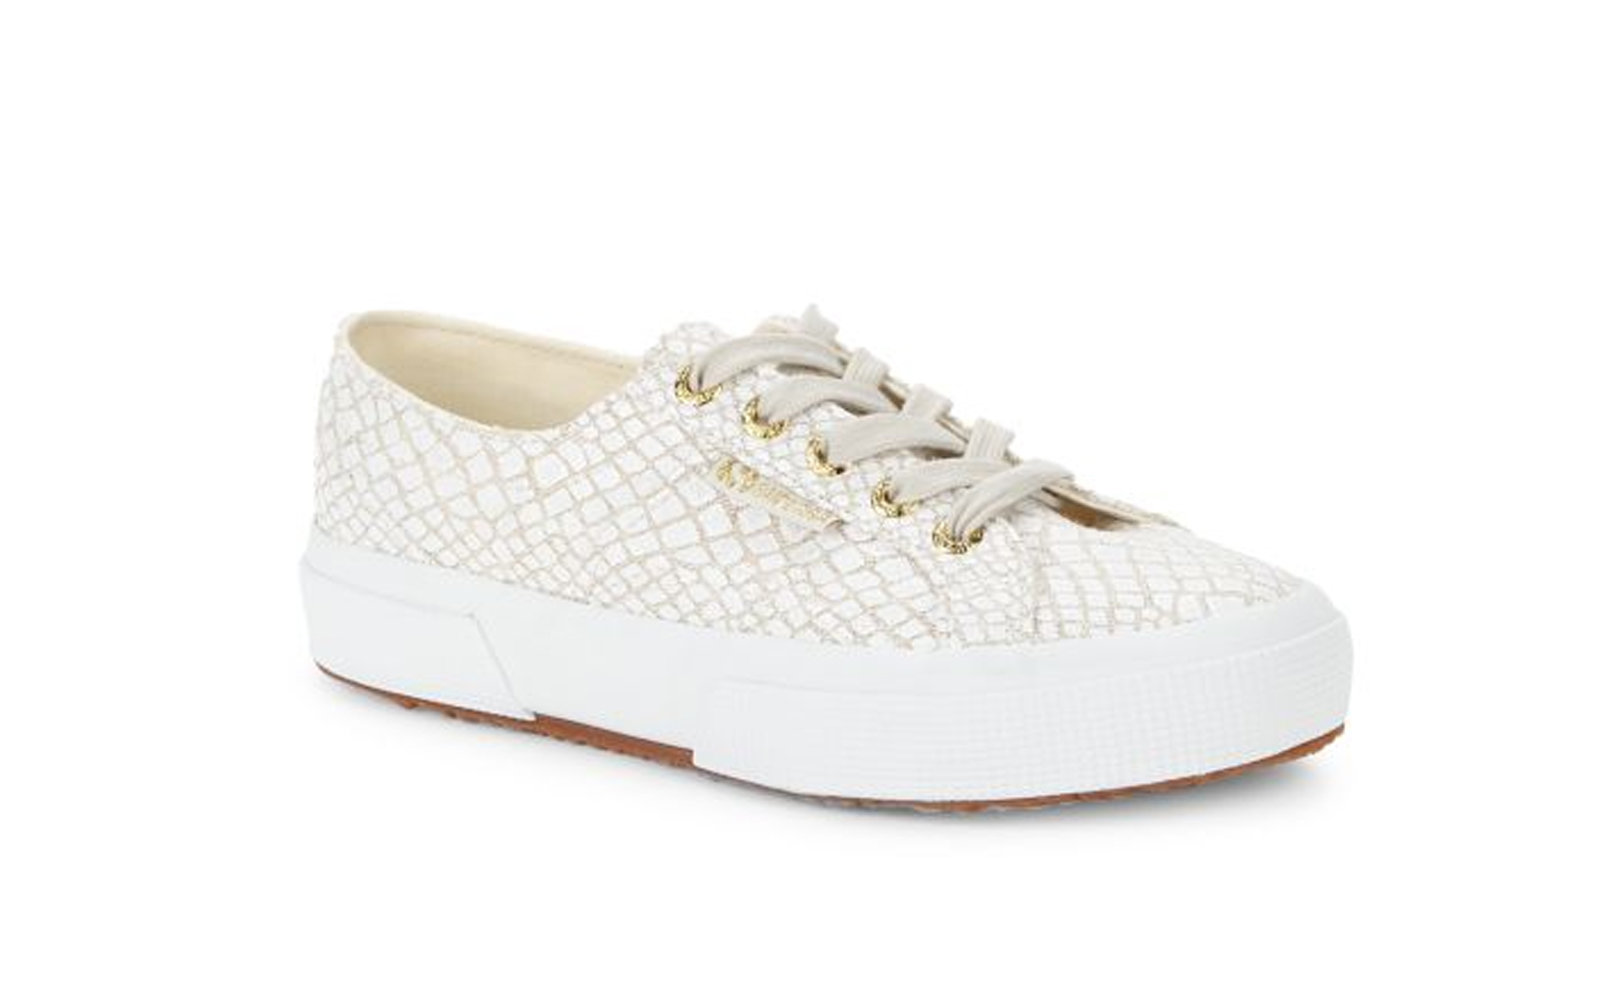 Superga Printed Canvas Platform Sneakers